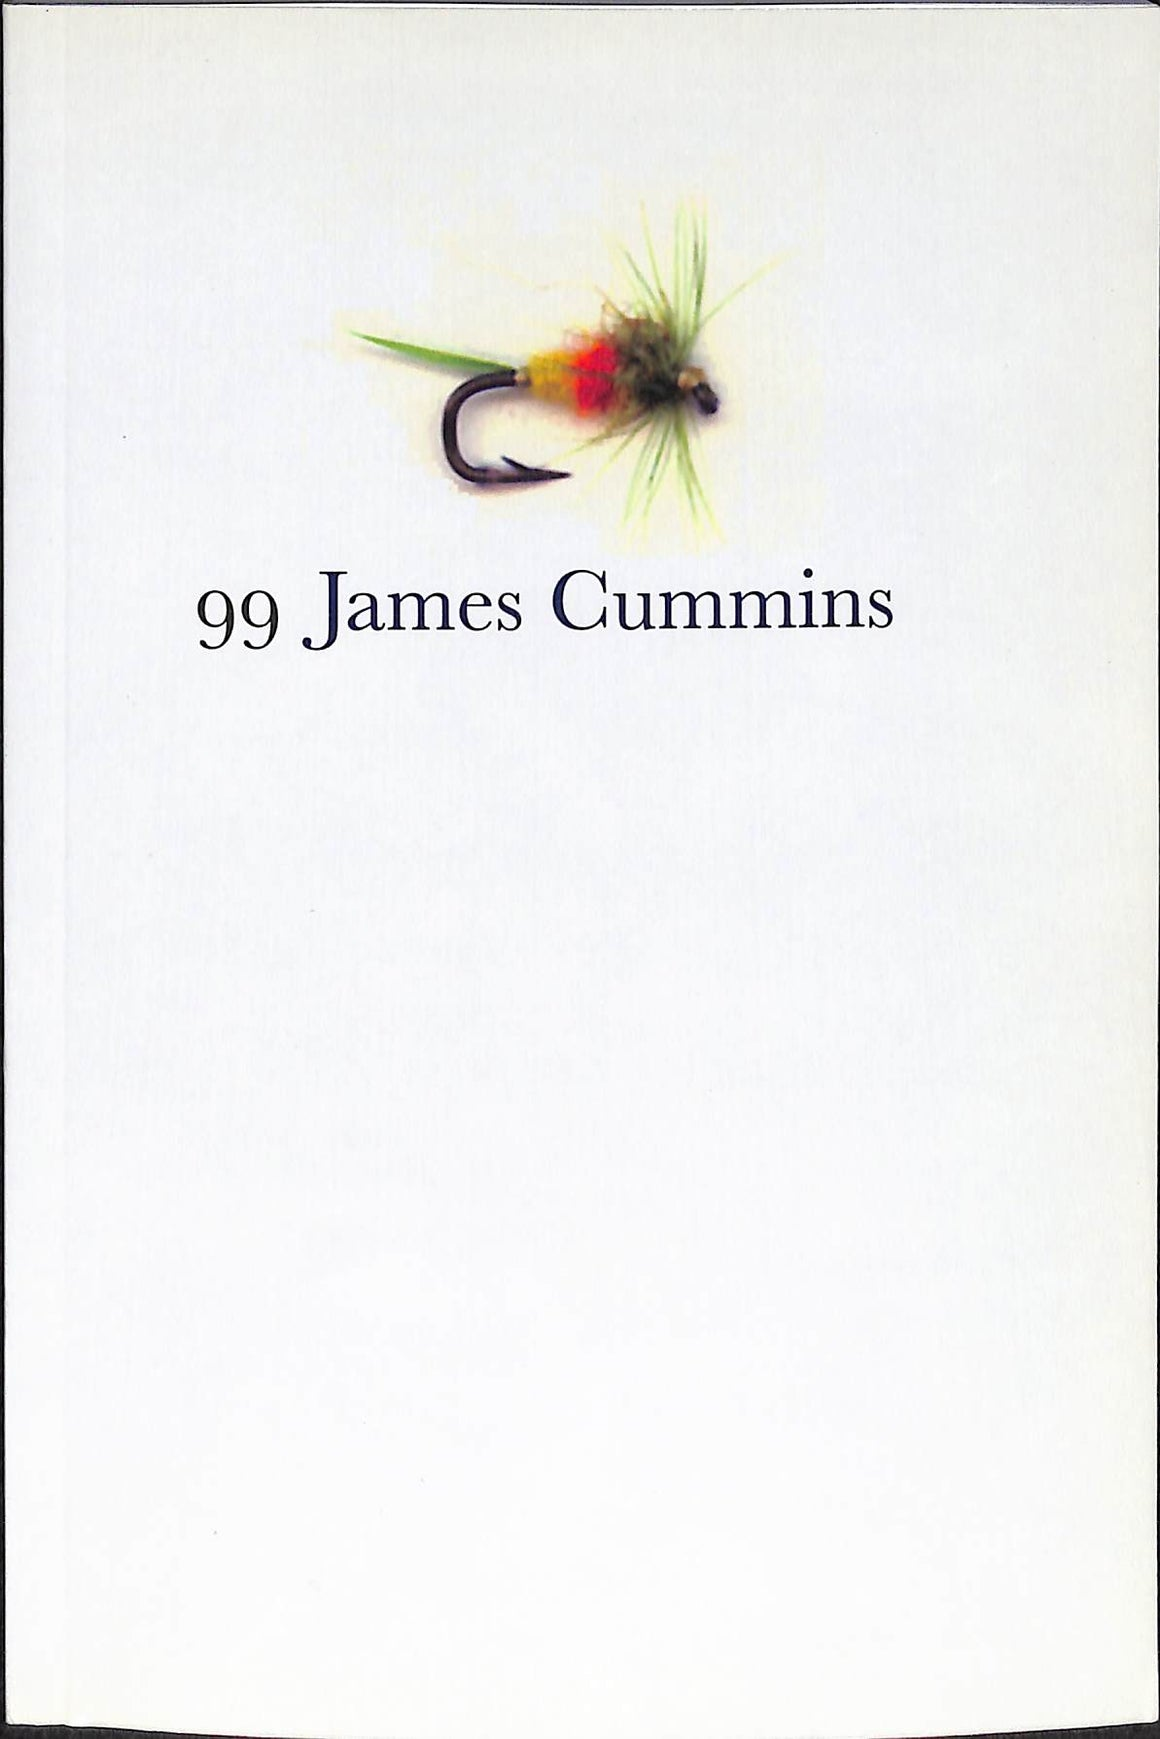 James Cummins Angling/ Sporting Rare Books #99 Catalog